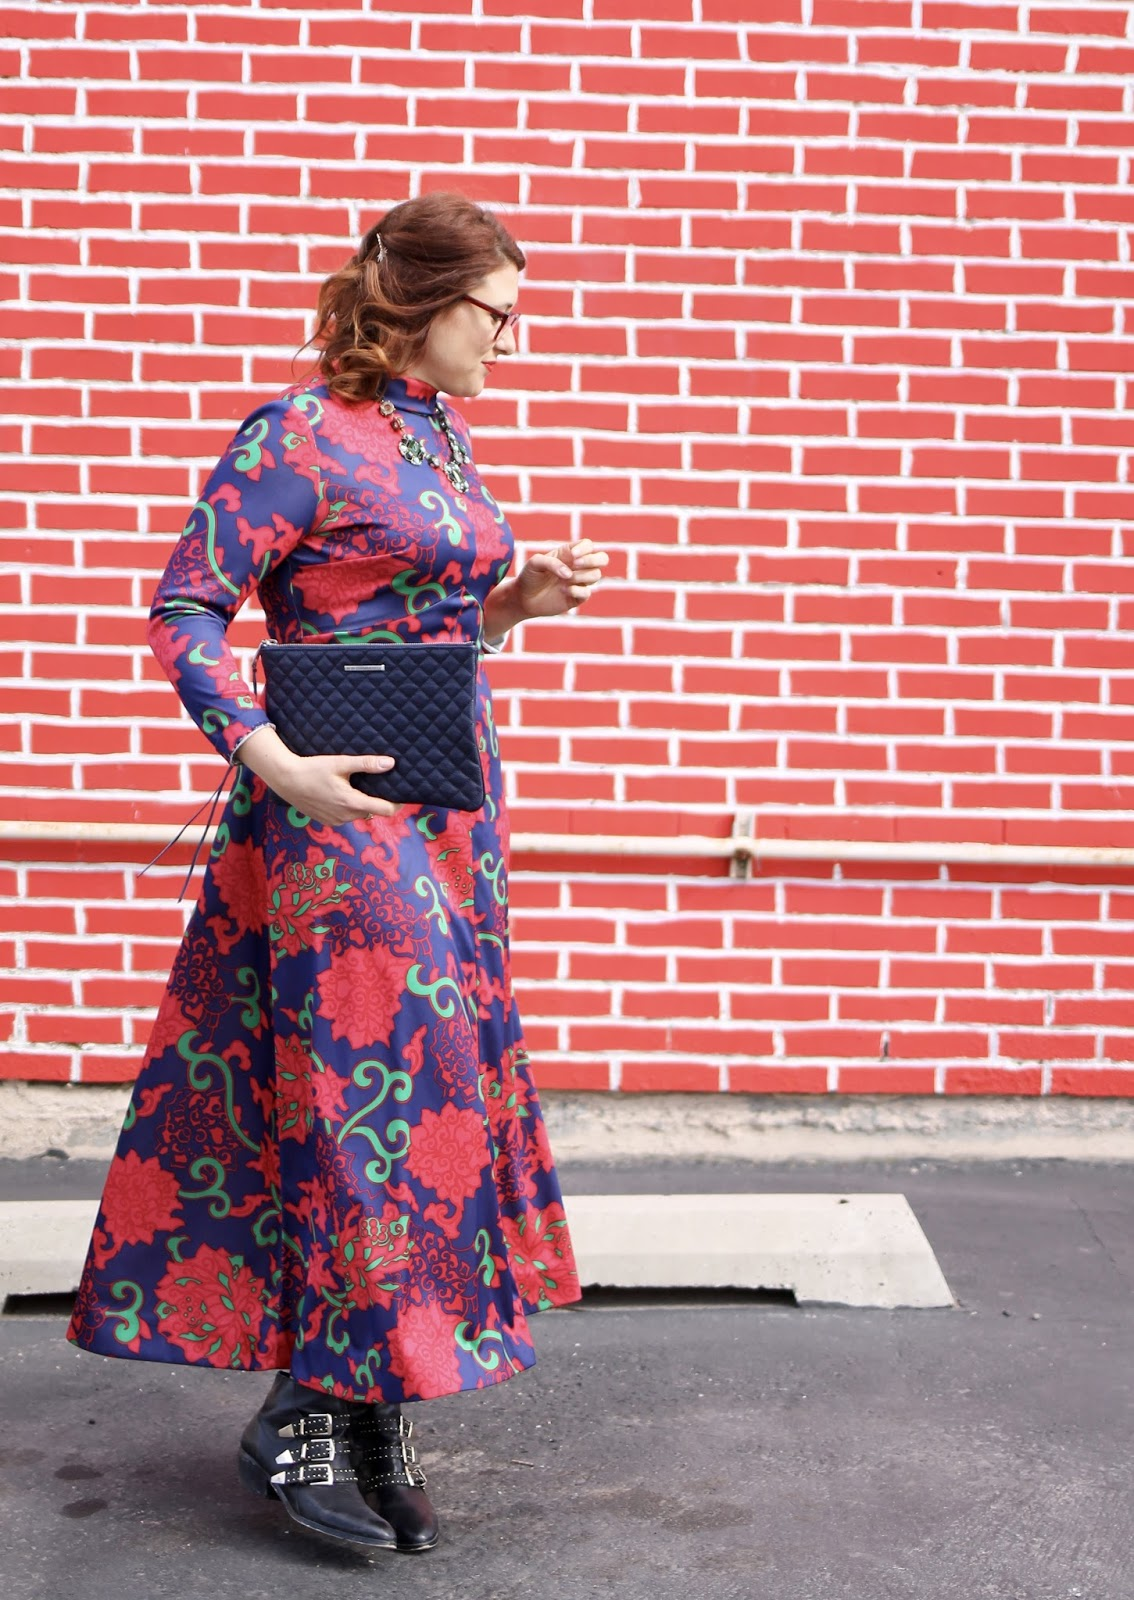 warby parker percy, Maxi dress, vintage dress, black booties,Rebecca Minkoff quilted clutch, utah fashion week, fashion show look